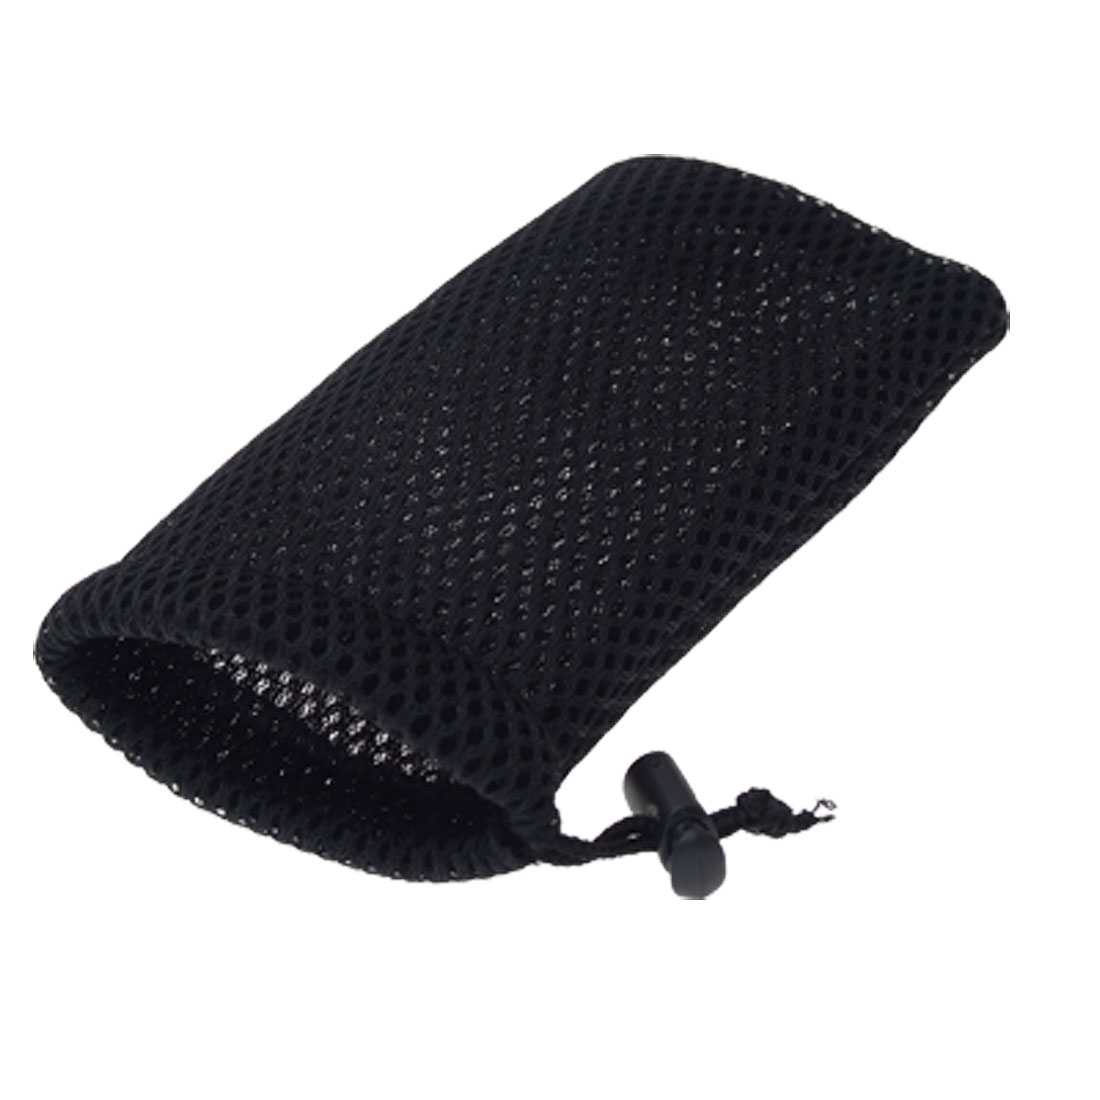 Black Mesh Cell Mobile Phone Pouch Mp3 Mp4 Nylon Bag